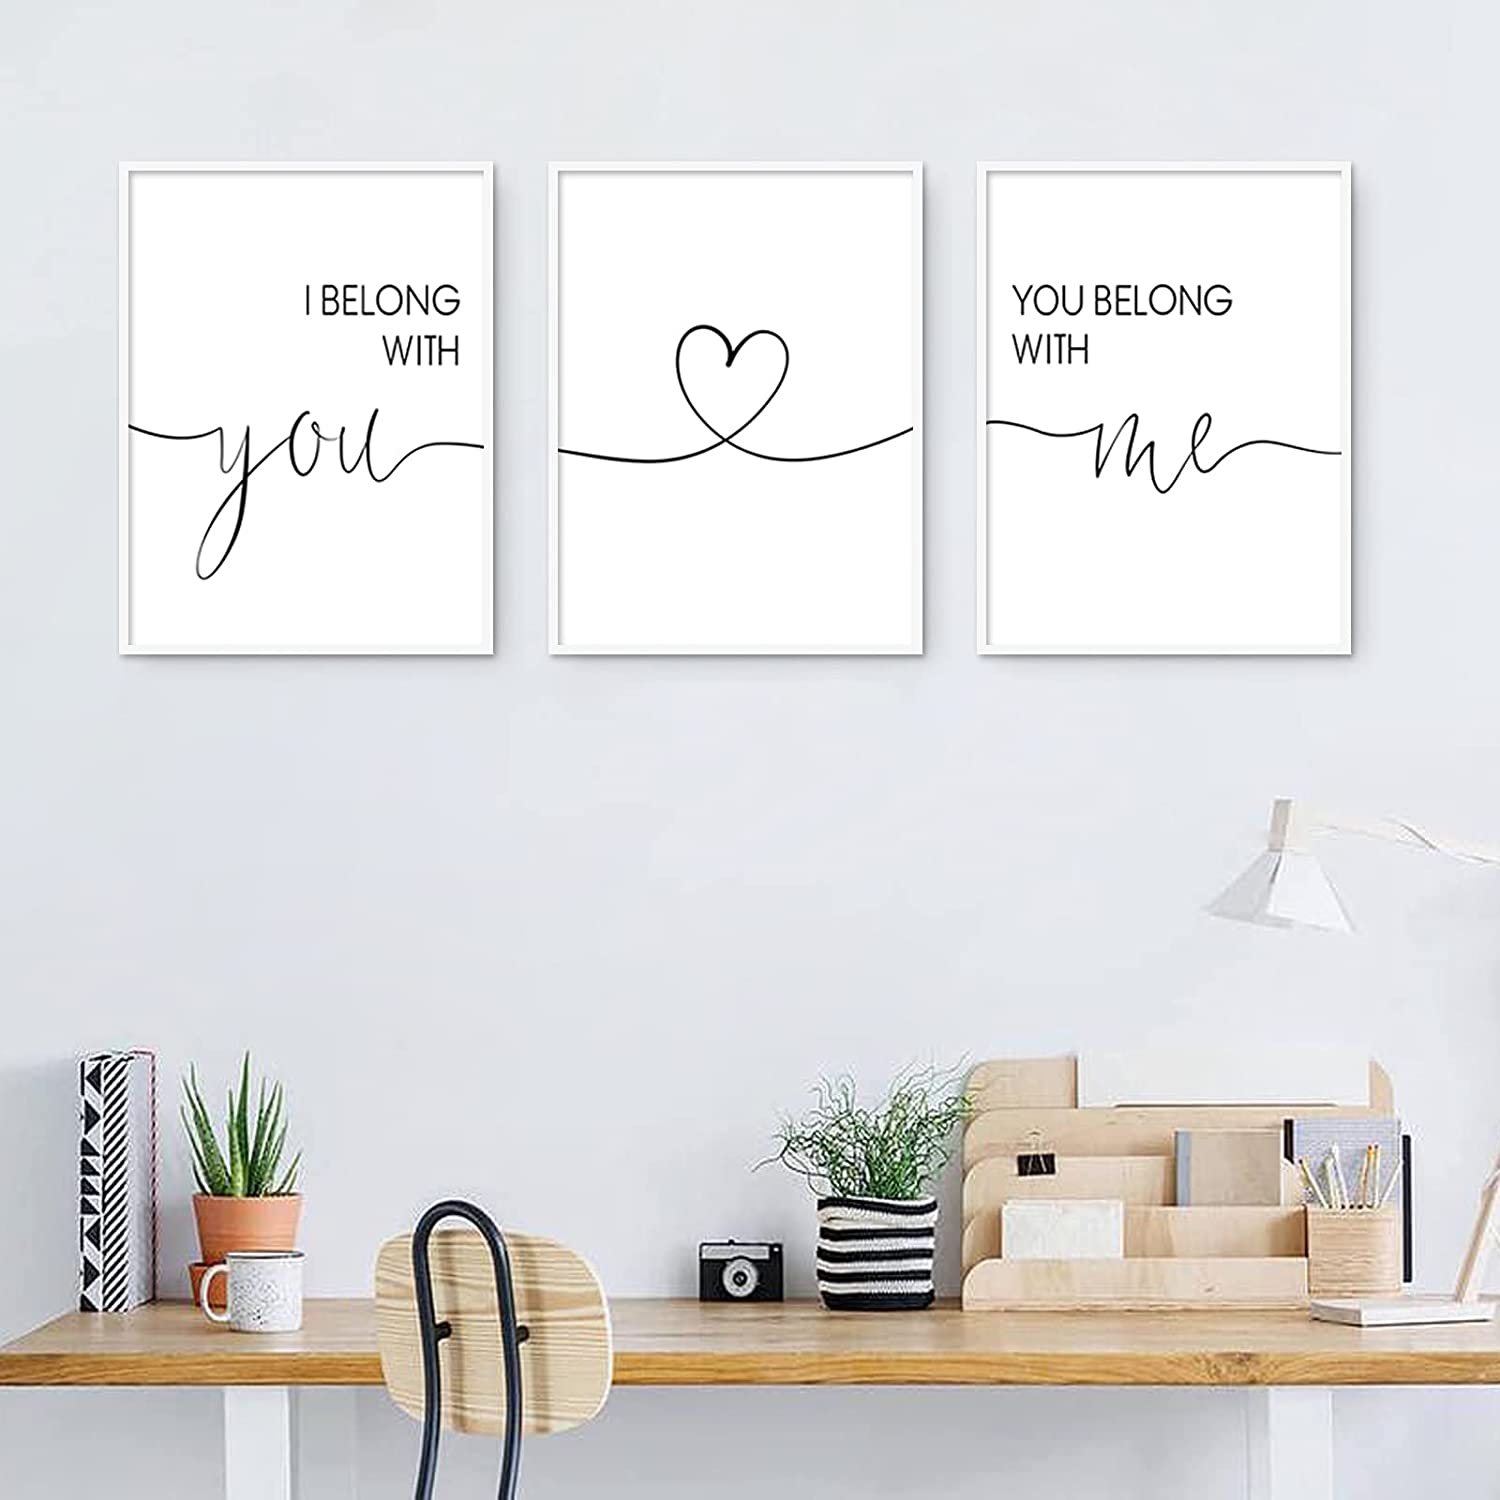 I Belong with You You Belong with Me Wall Art Minimalist Canvas Wall Art Love Quotes Wall Picture Decor Minimalist Painting Couples Love Wall Art for Bedroom Living Room Decor 12x16x3 Inch Unframed